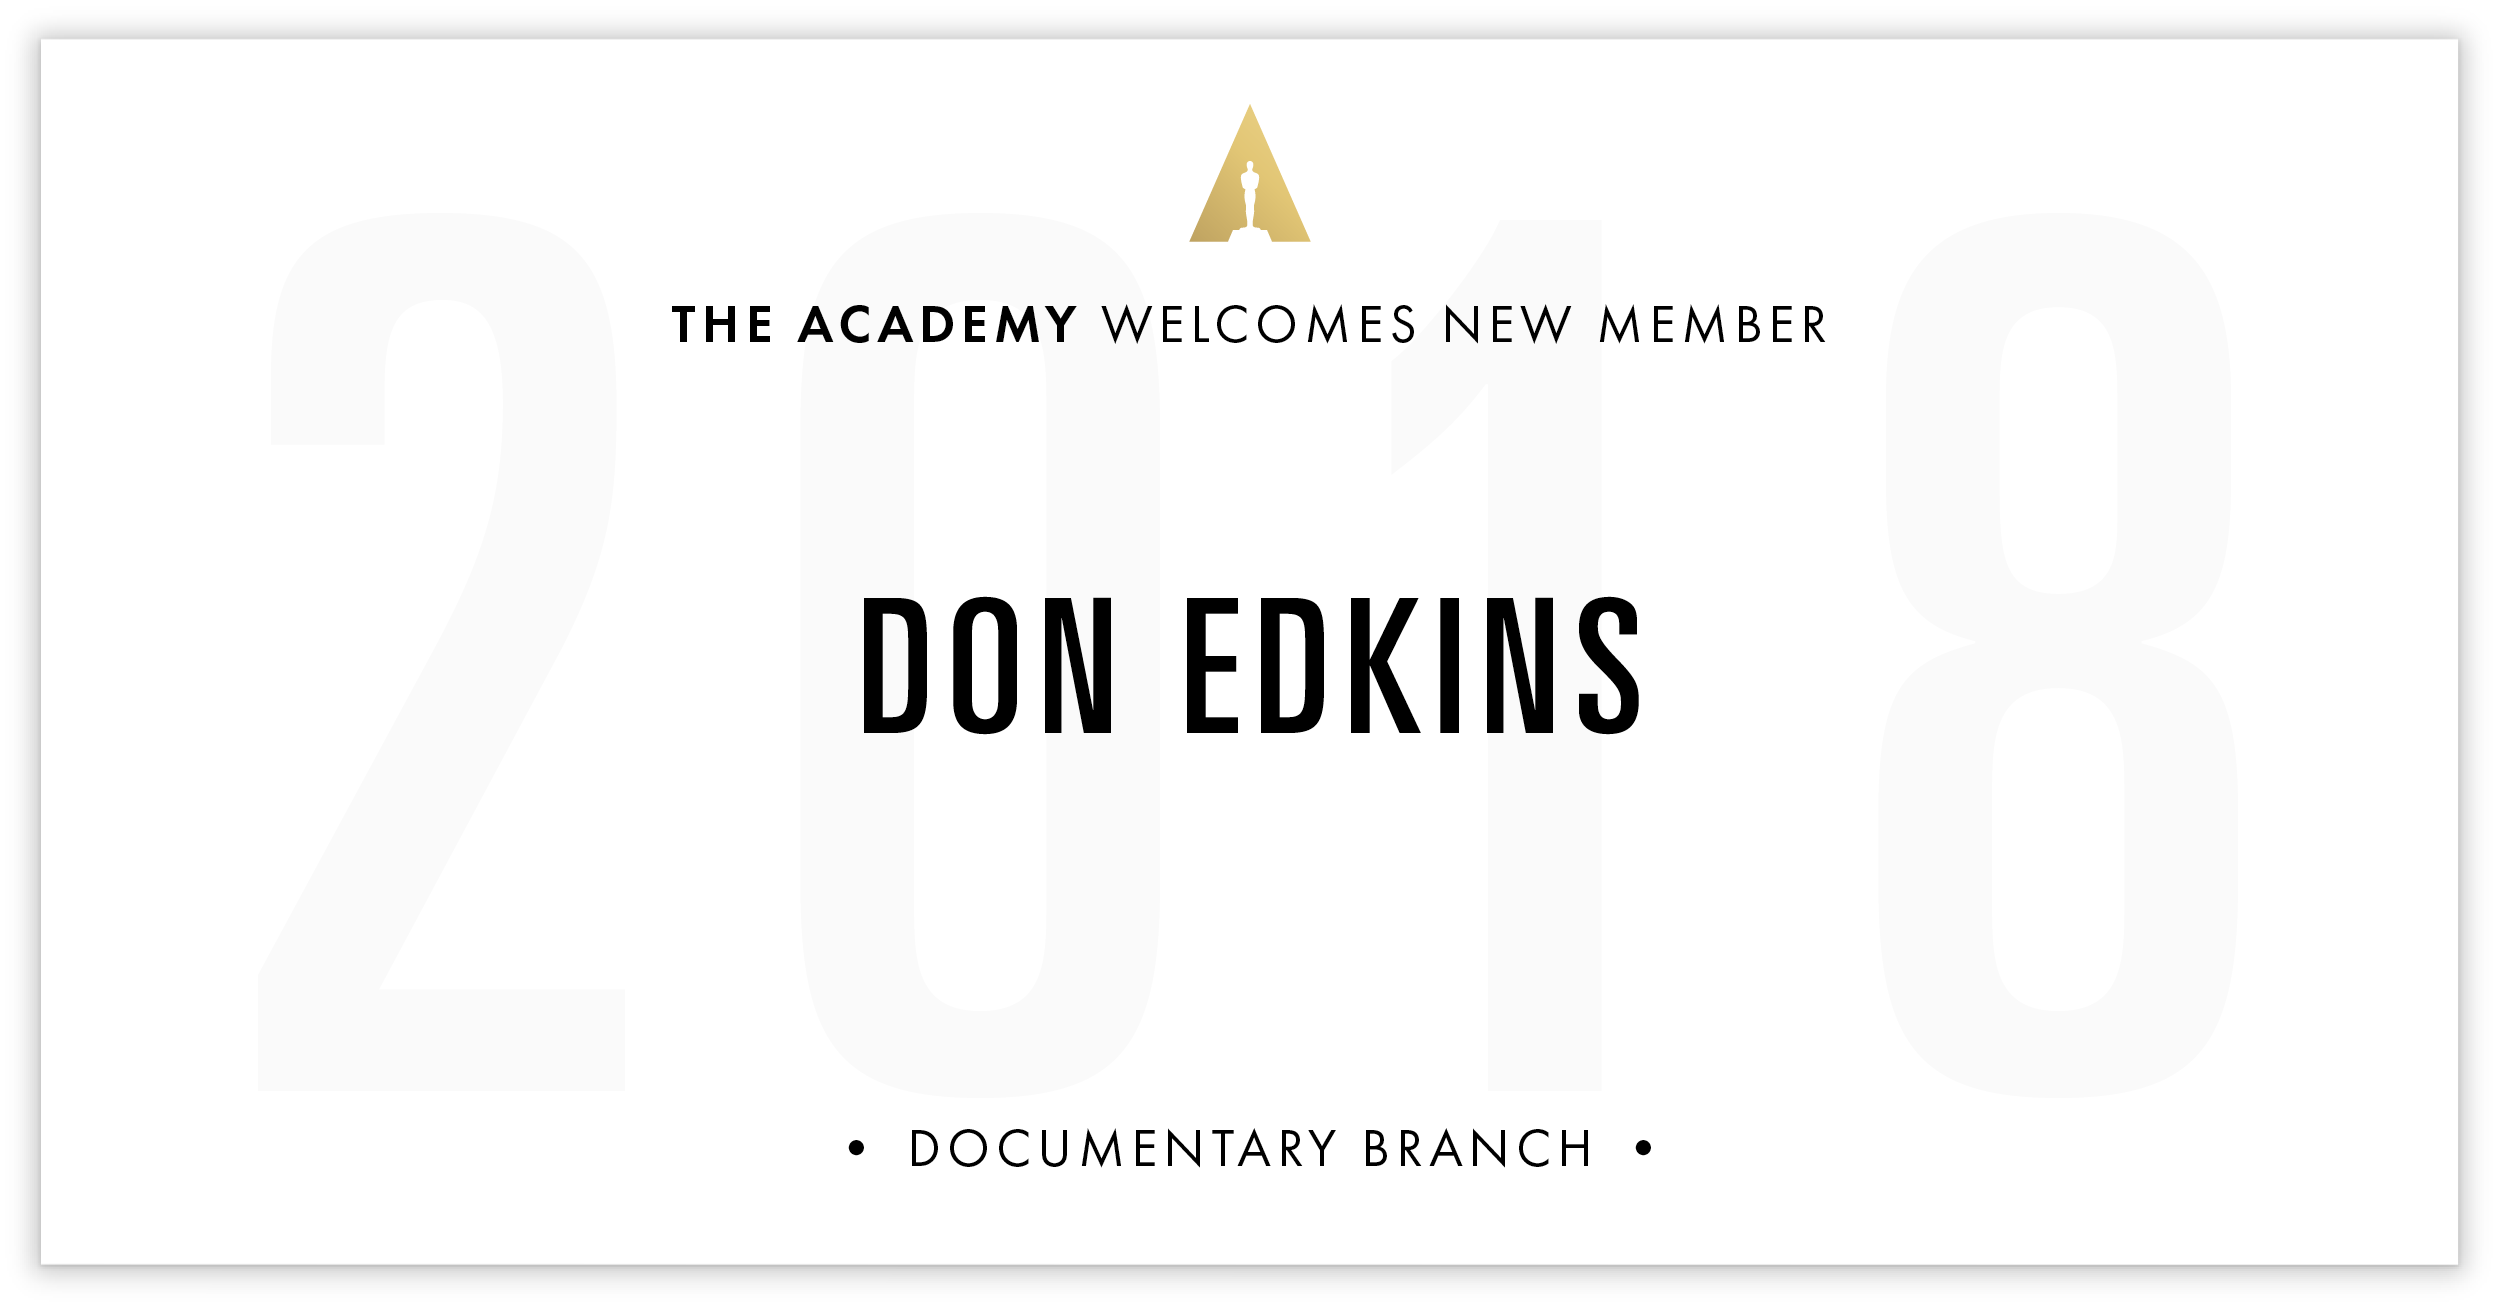 Don Edkins is invited!